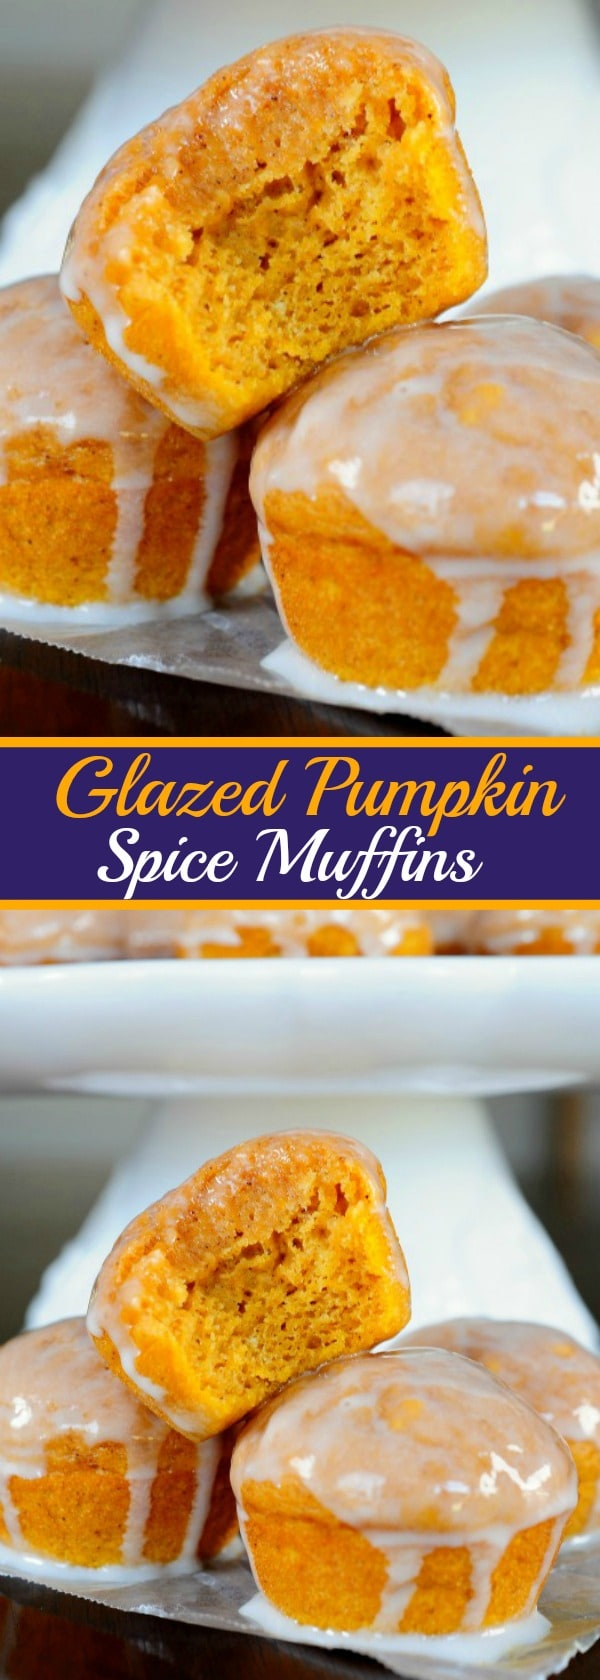 Glazed Pumpkin Spice Muffins - Perfect cozy, fall breakfast!